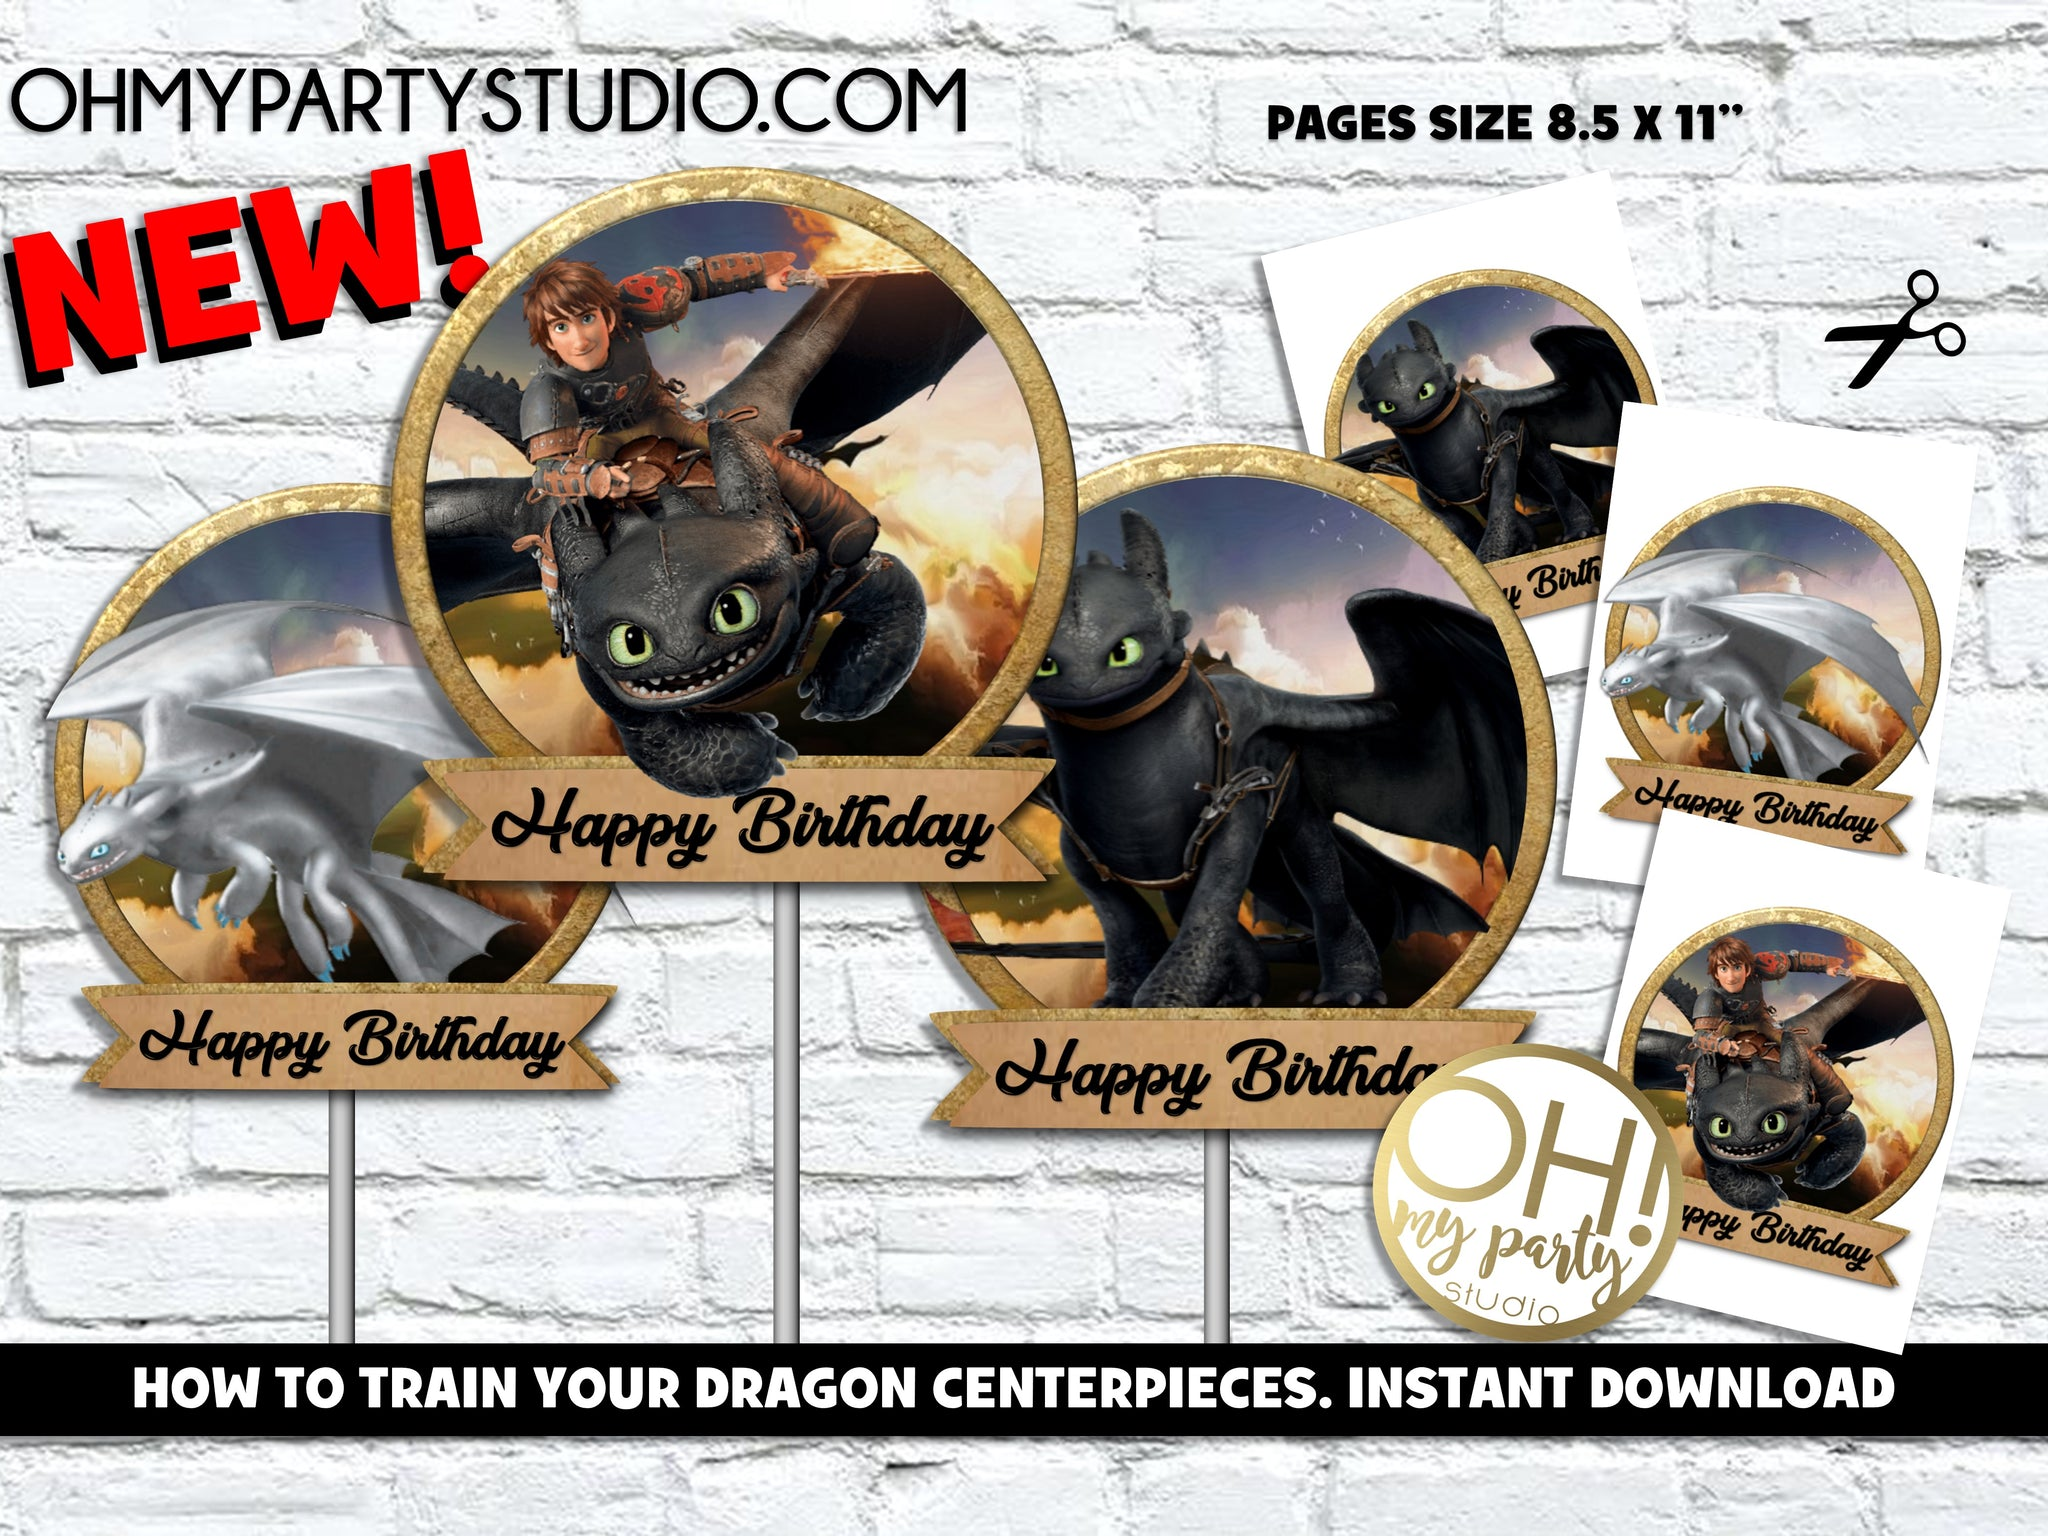 HOW TO TRAIN YOUR DRAGON CENTERPIECES,HOW TO TRAIN YOUR DRAGON CAKE TOPPER, HOW TO TRAIN YOUR DRAGON PARTY, HOW TO TRAIN YOUR DRAGON PARTY IDEAS, HOW TO TRAIN YOUR DRAGON PARTY THEME